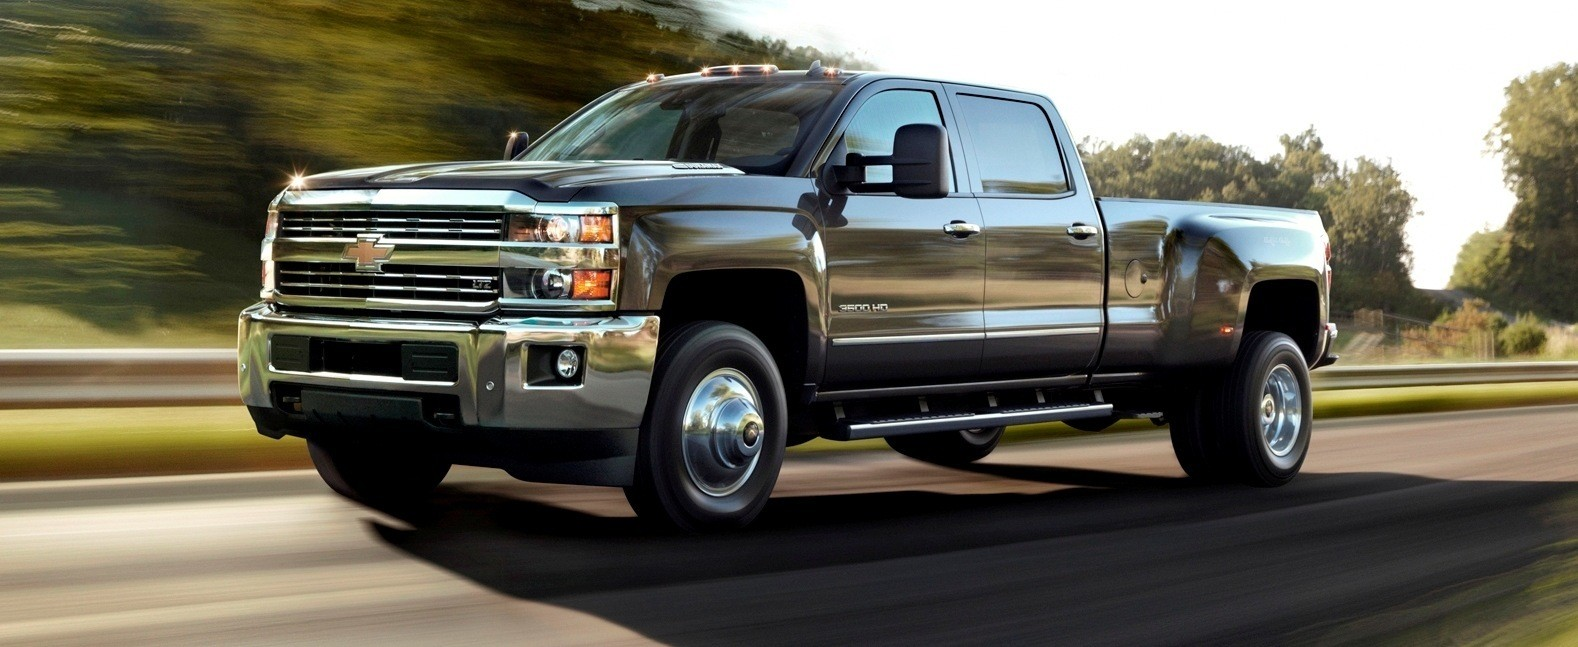 Silverado High Country Hd Chevrolet S First Premium Heavy Duty Pickup Combines The Refinement And Convenience Of 1500 With